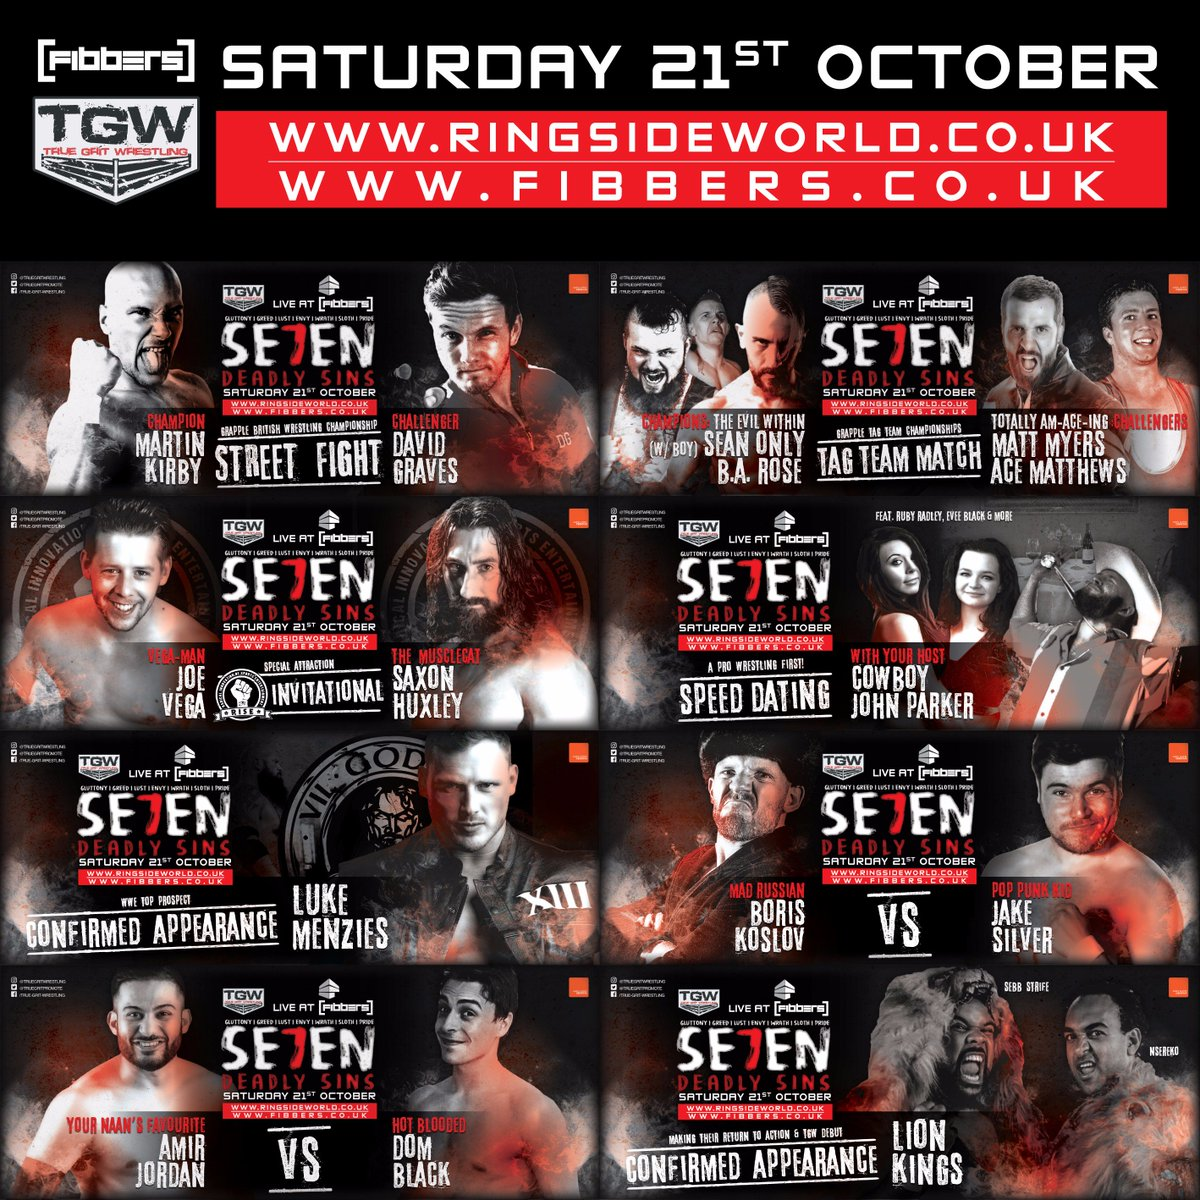 #wrestling in #York this Saturday! Make sure you&#39;ve booked your tickets for @FibbersYork  http://www. ticketweb.co.uk/event/true-gri t-wrestling-presents-se7en-deadly-sins-tickets/286917 &nbsp; … <br>http://pic.twitter.com/7EZ0DEXG8q